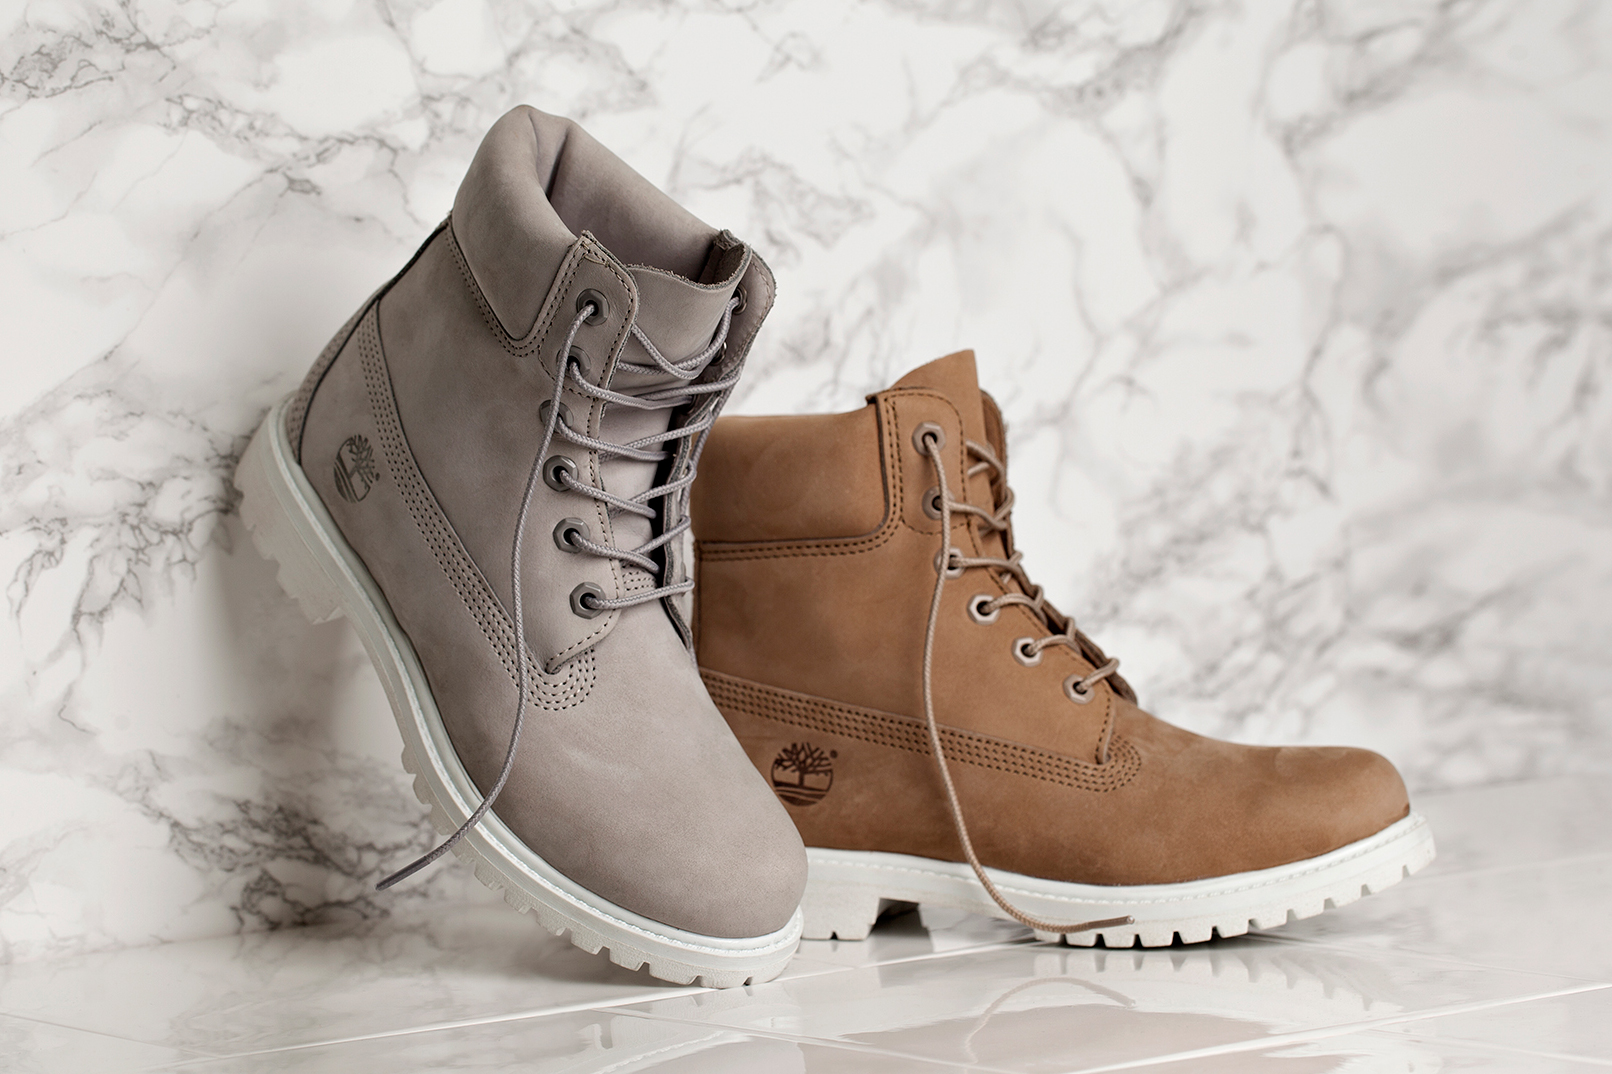 """Timberland Unveils WMNS """"Grey"""" and """"Bone"""" 6-Inch Boot Exclusively for Women"""